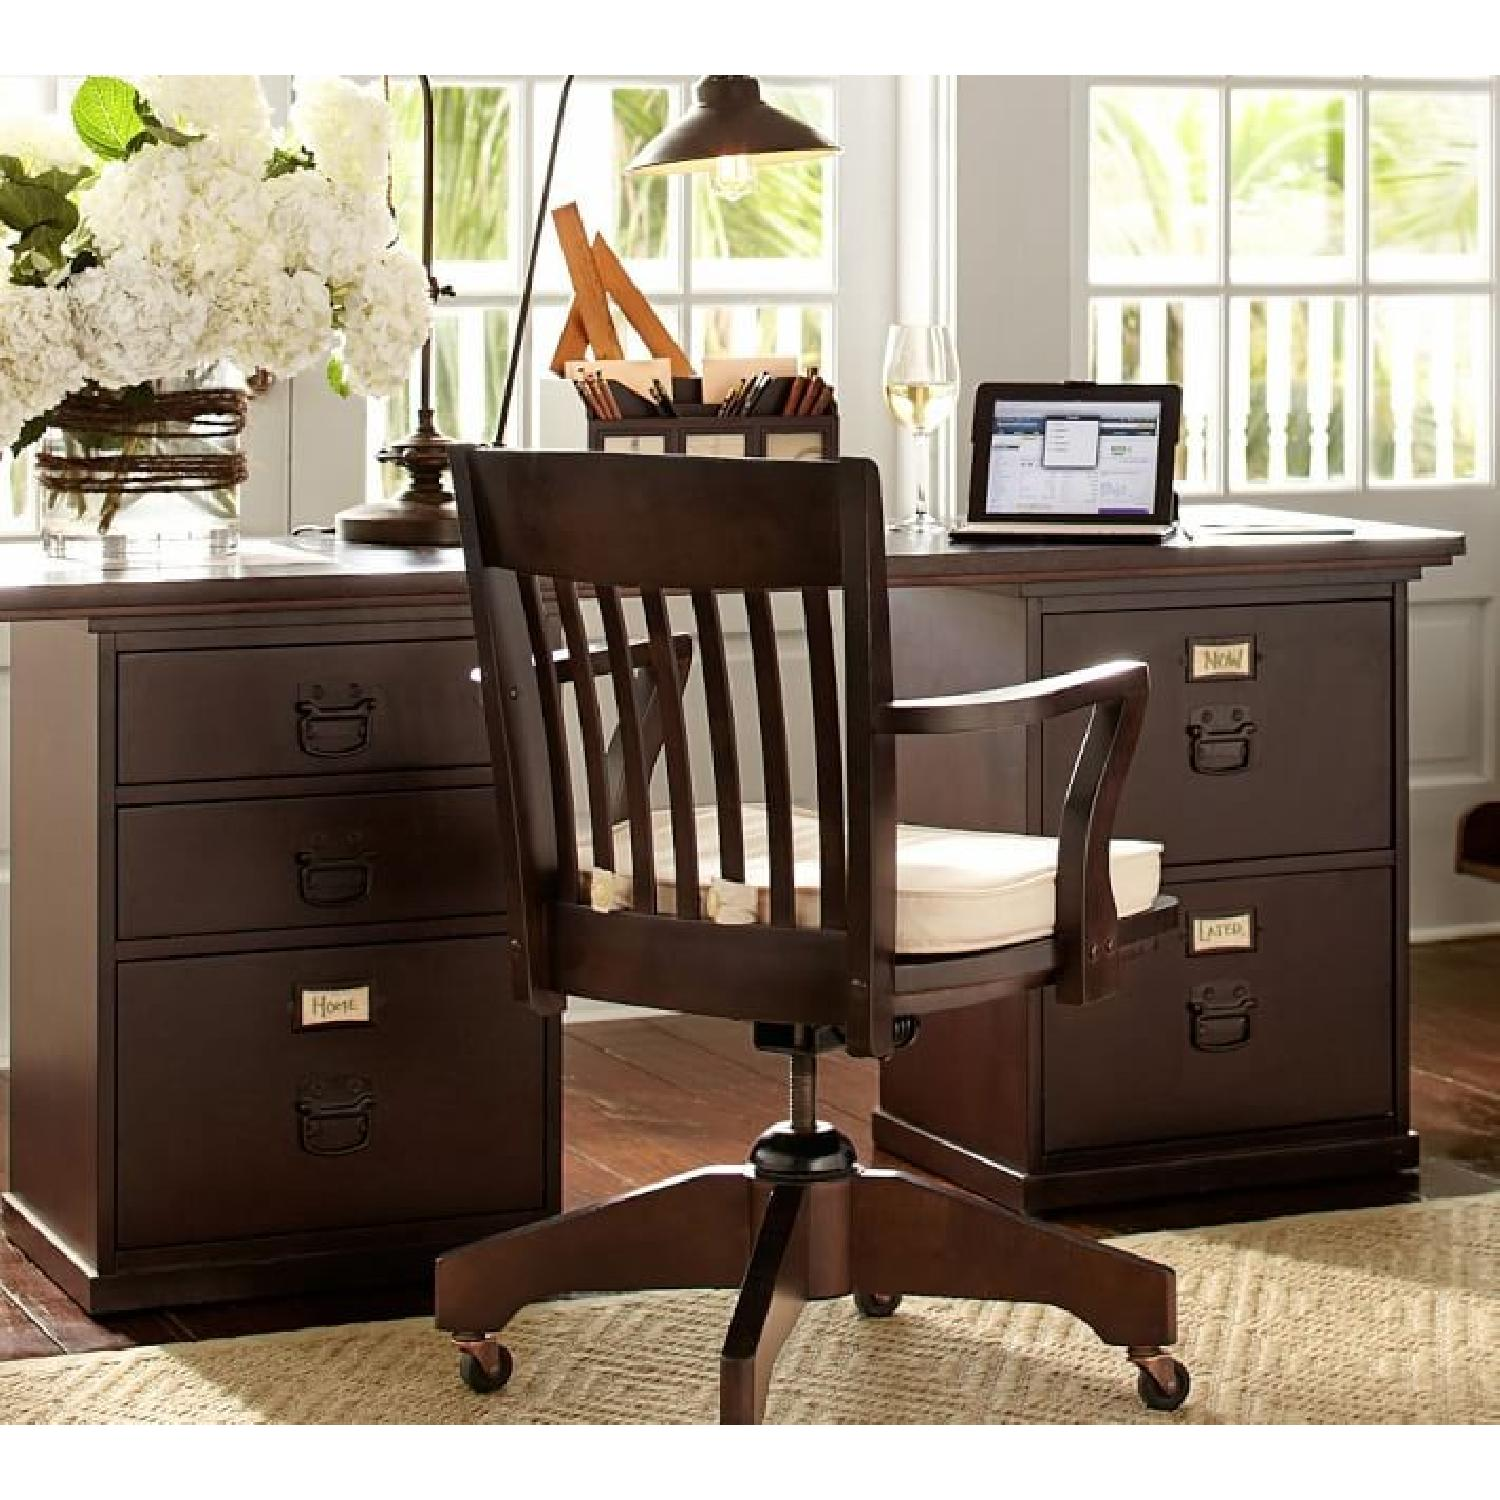 Pottery Barn Bedford Desk w/ Hutch - image-1